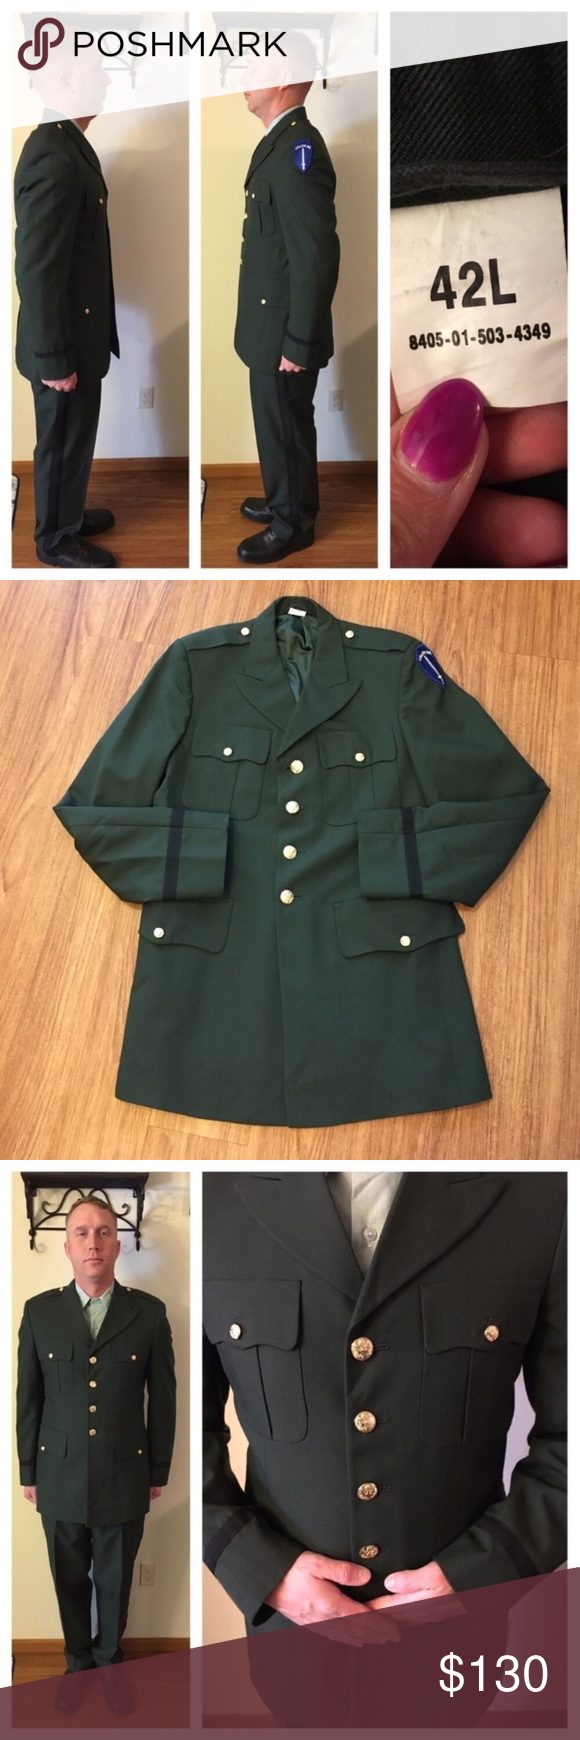 Vintage army dress green class a coat size l same day shipping